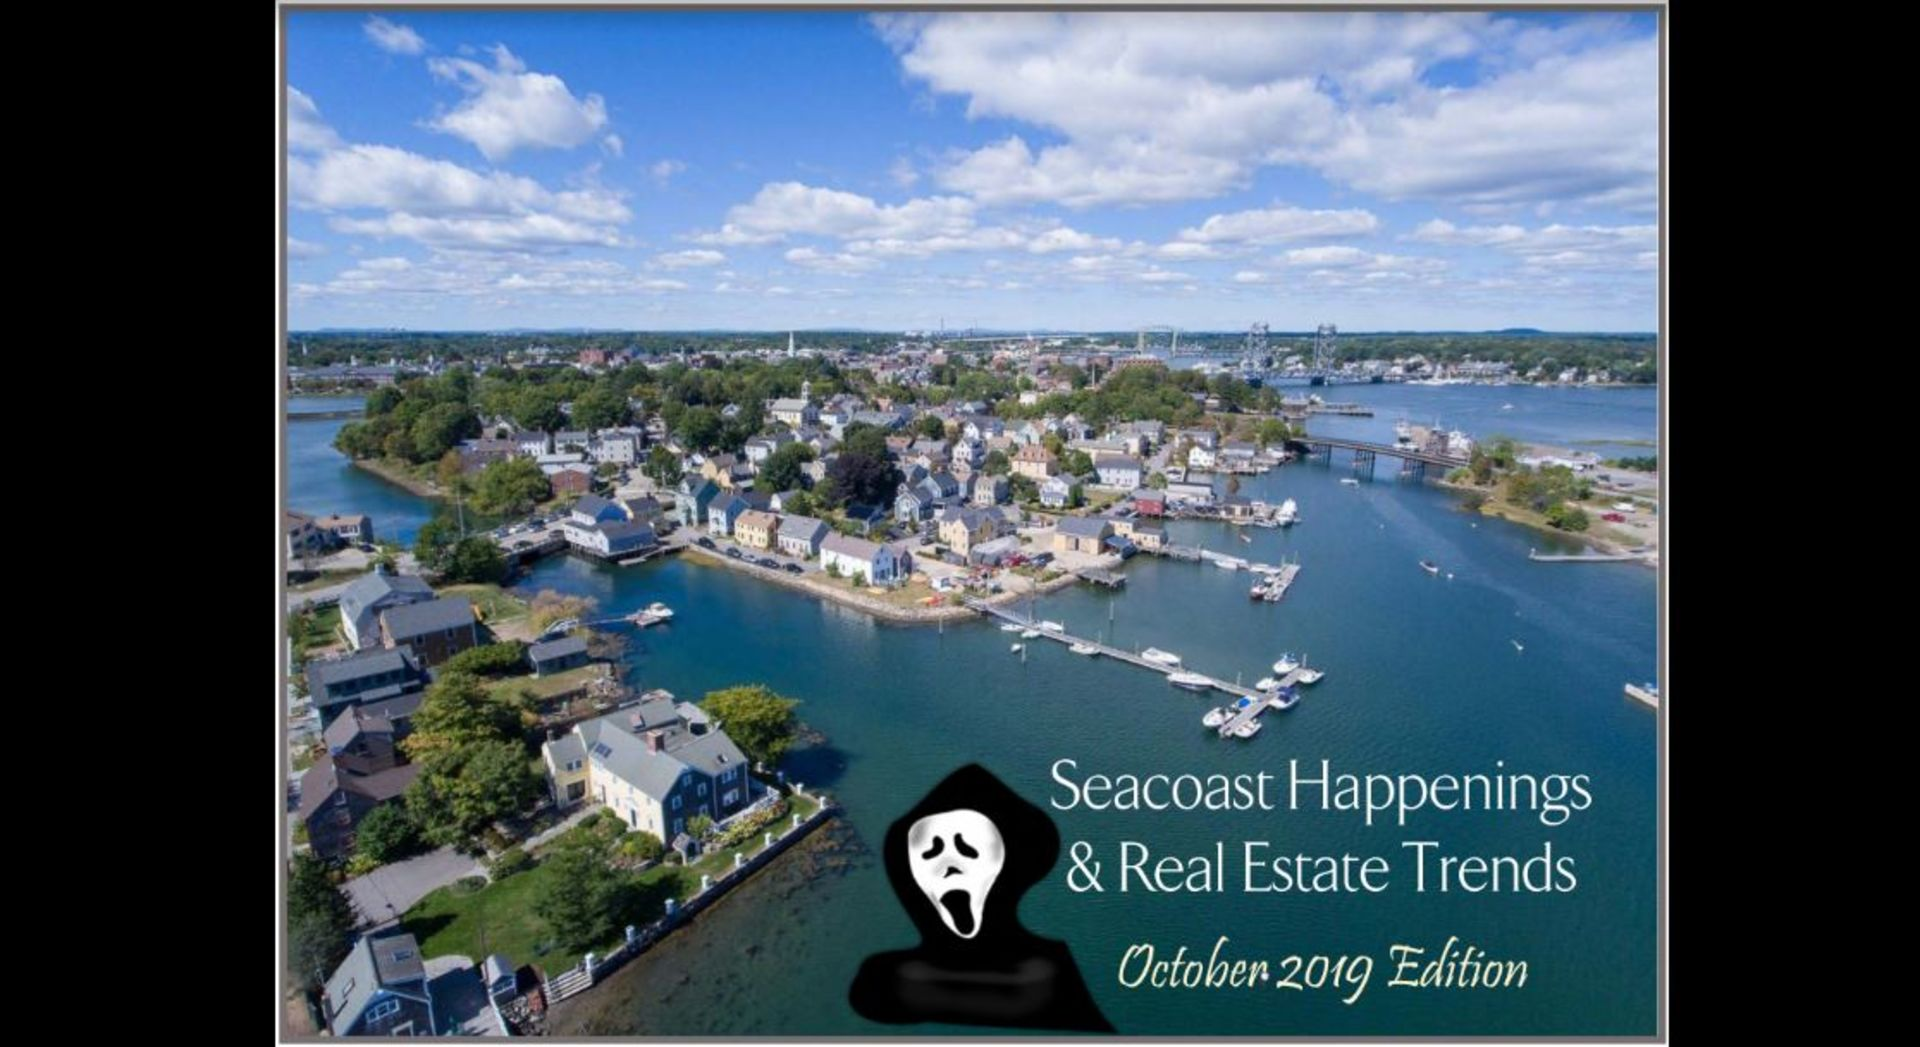 Seacoast Happenings in October